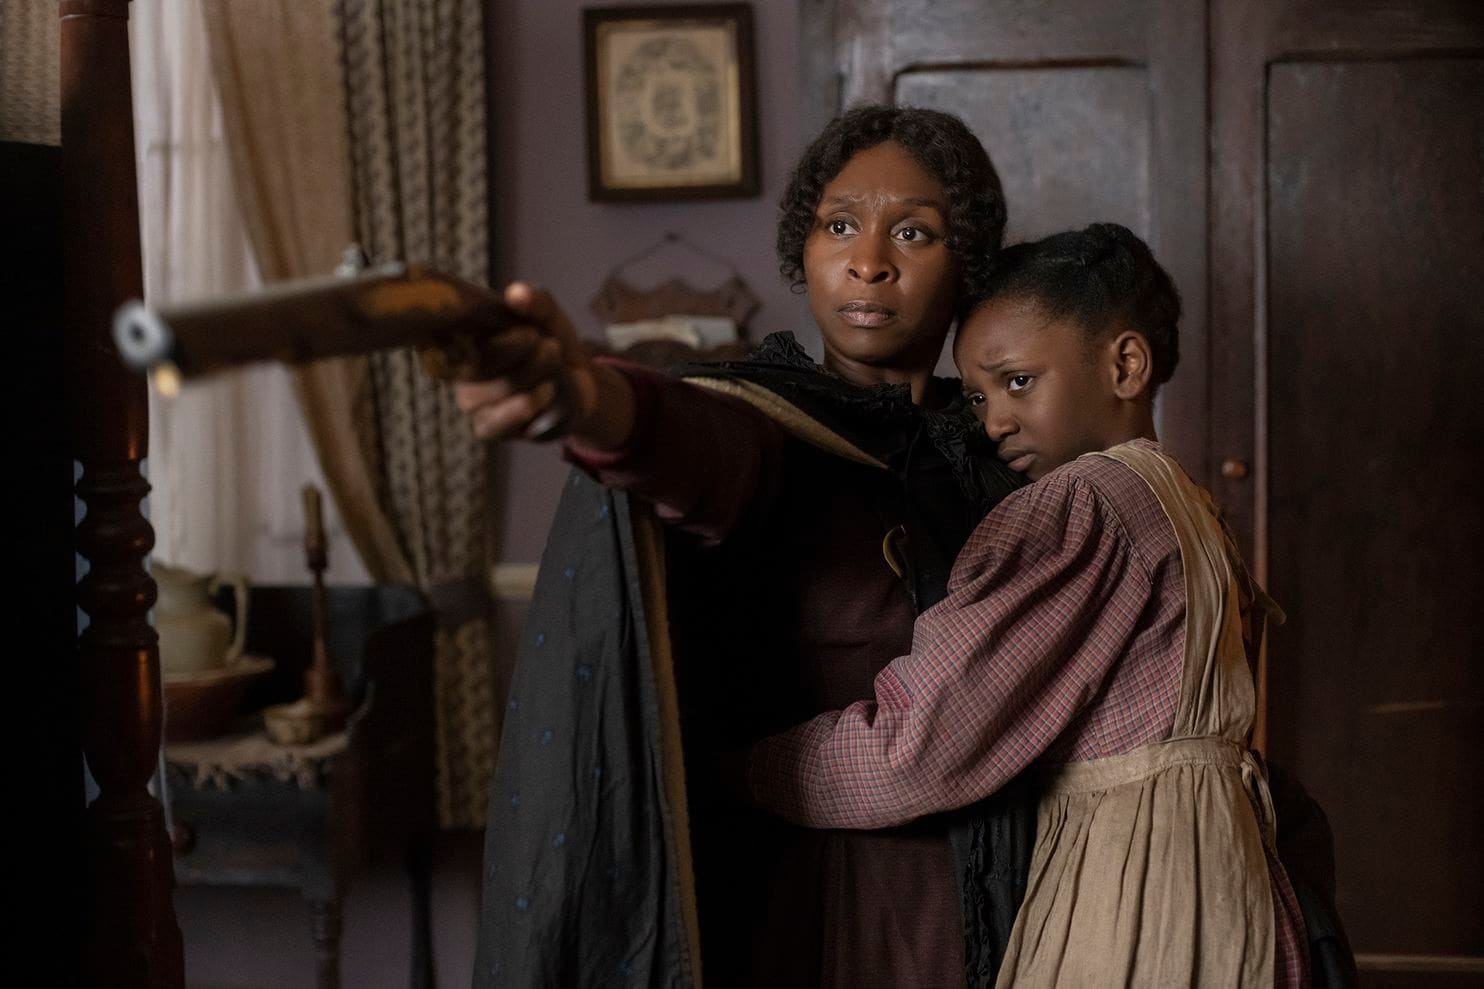 Cynthia Erivo, Harriet Tubman, Focus Features, Janelle Monáe